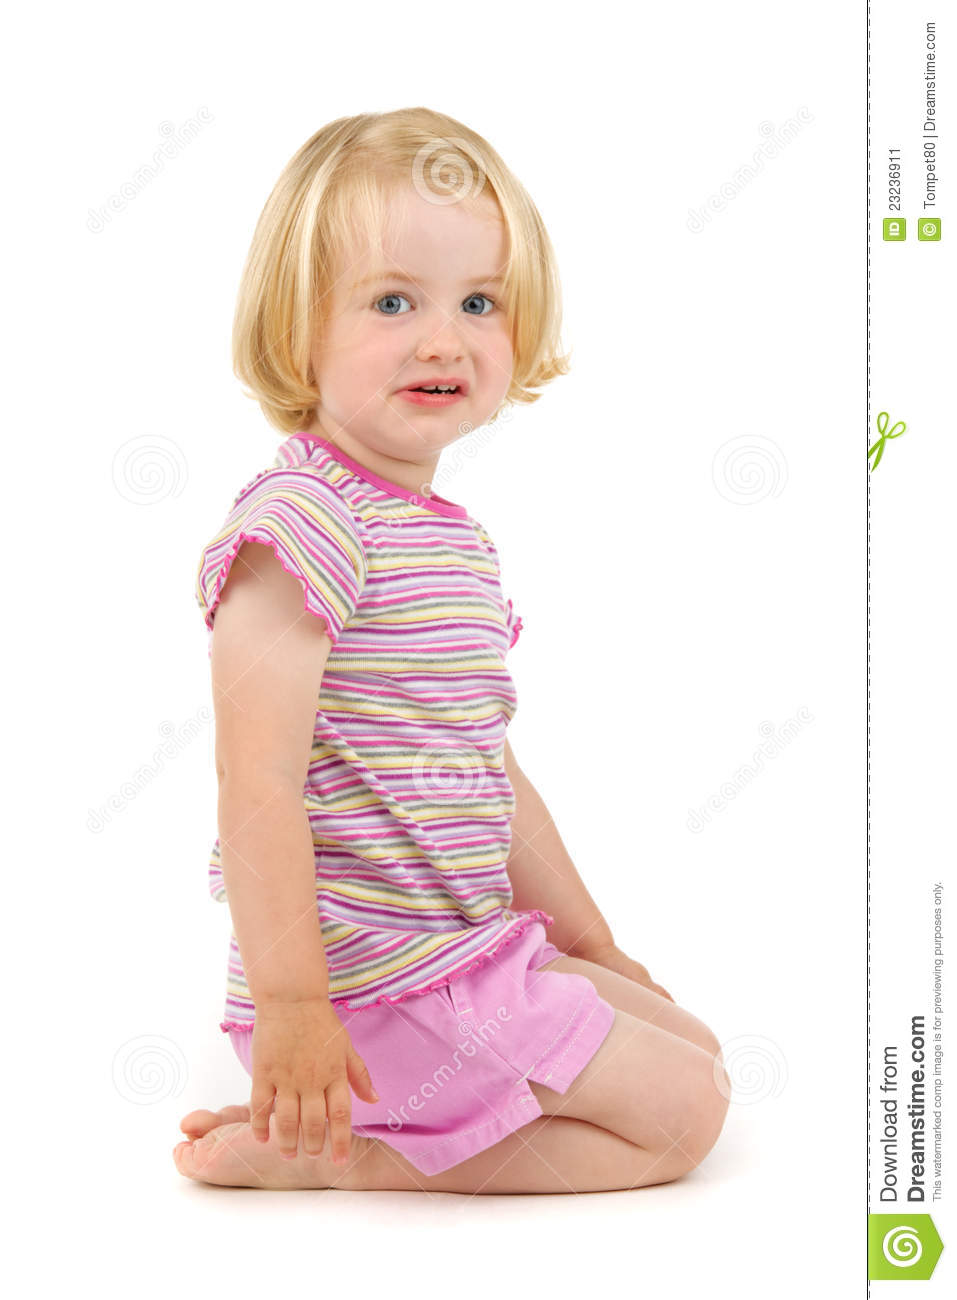 Frustrated Child Stock Image - Image: 23236911